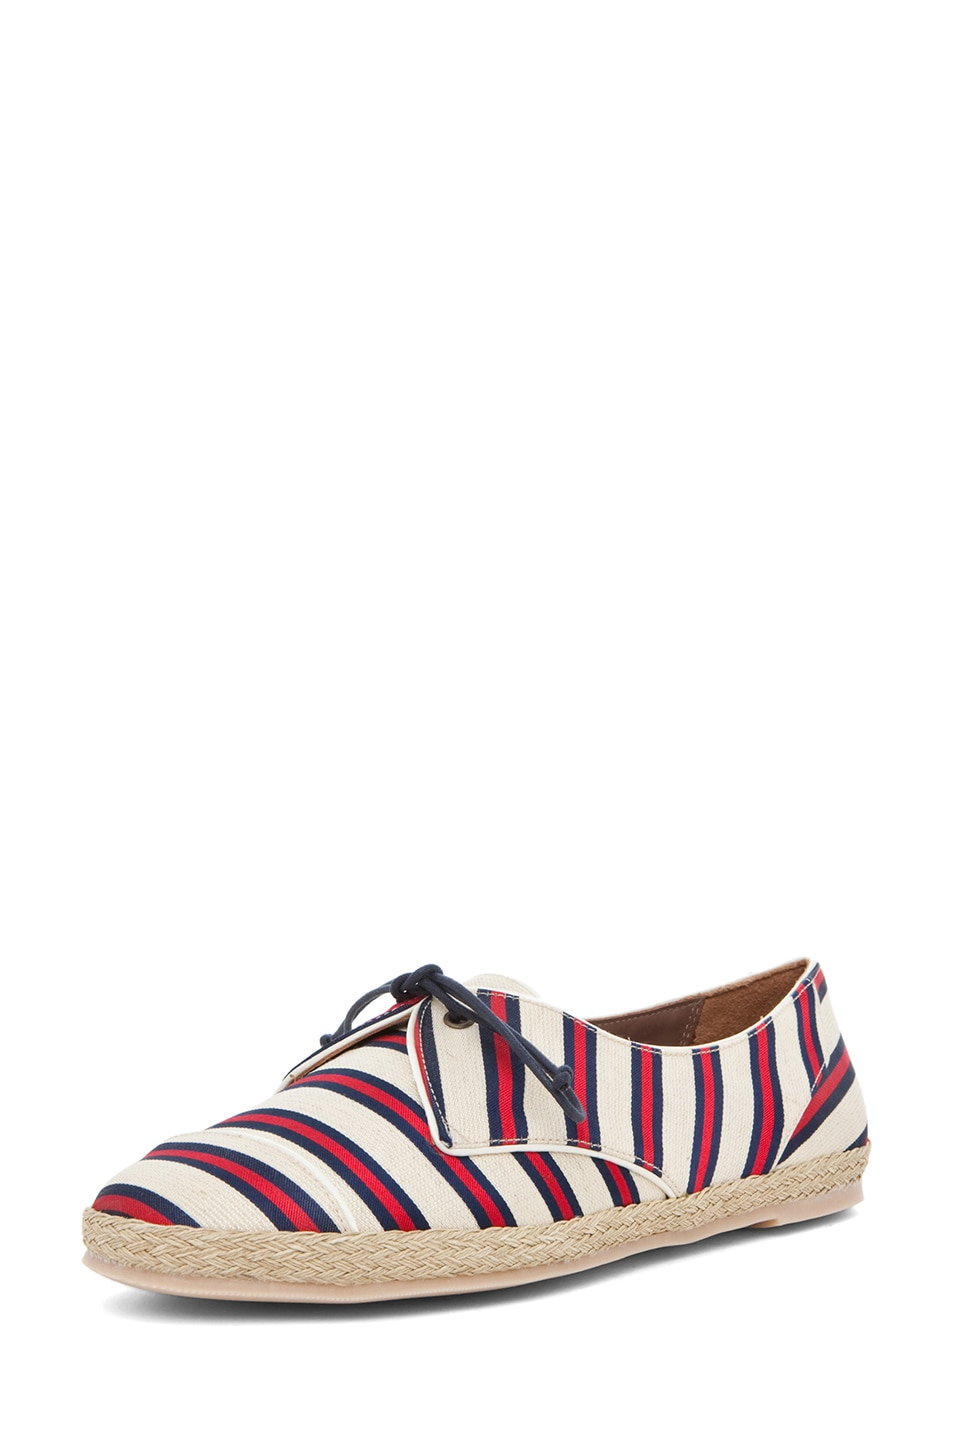 Image 2 of Tabitha Simmons Dolly Shiny-Canvas Cricket Stripe Flats in Red & Navy